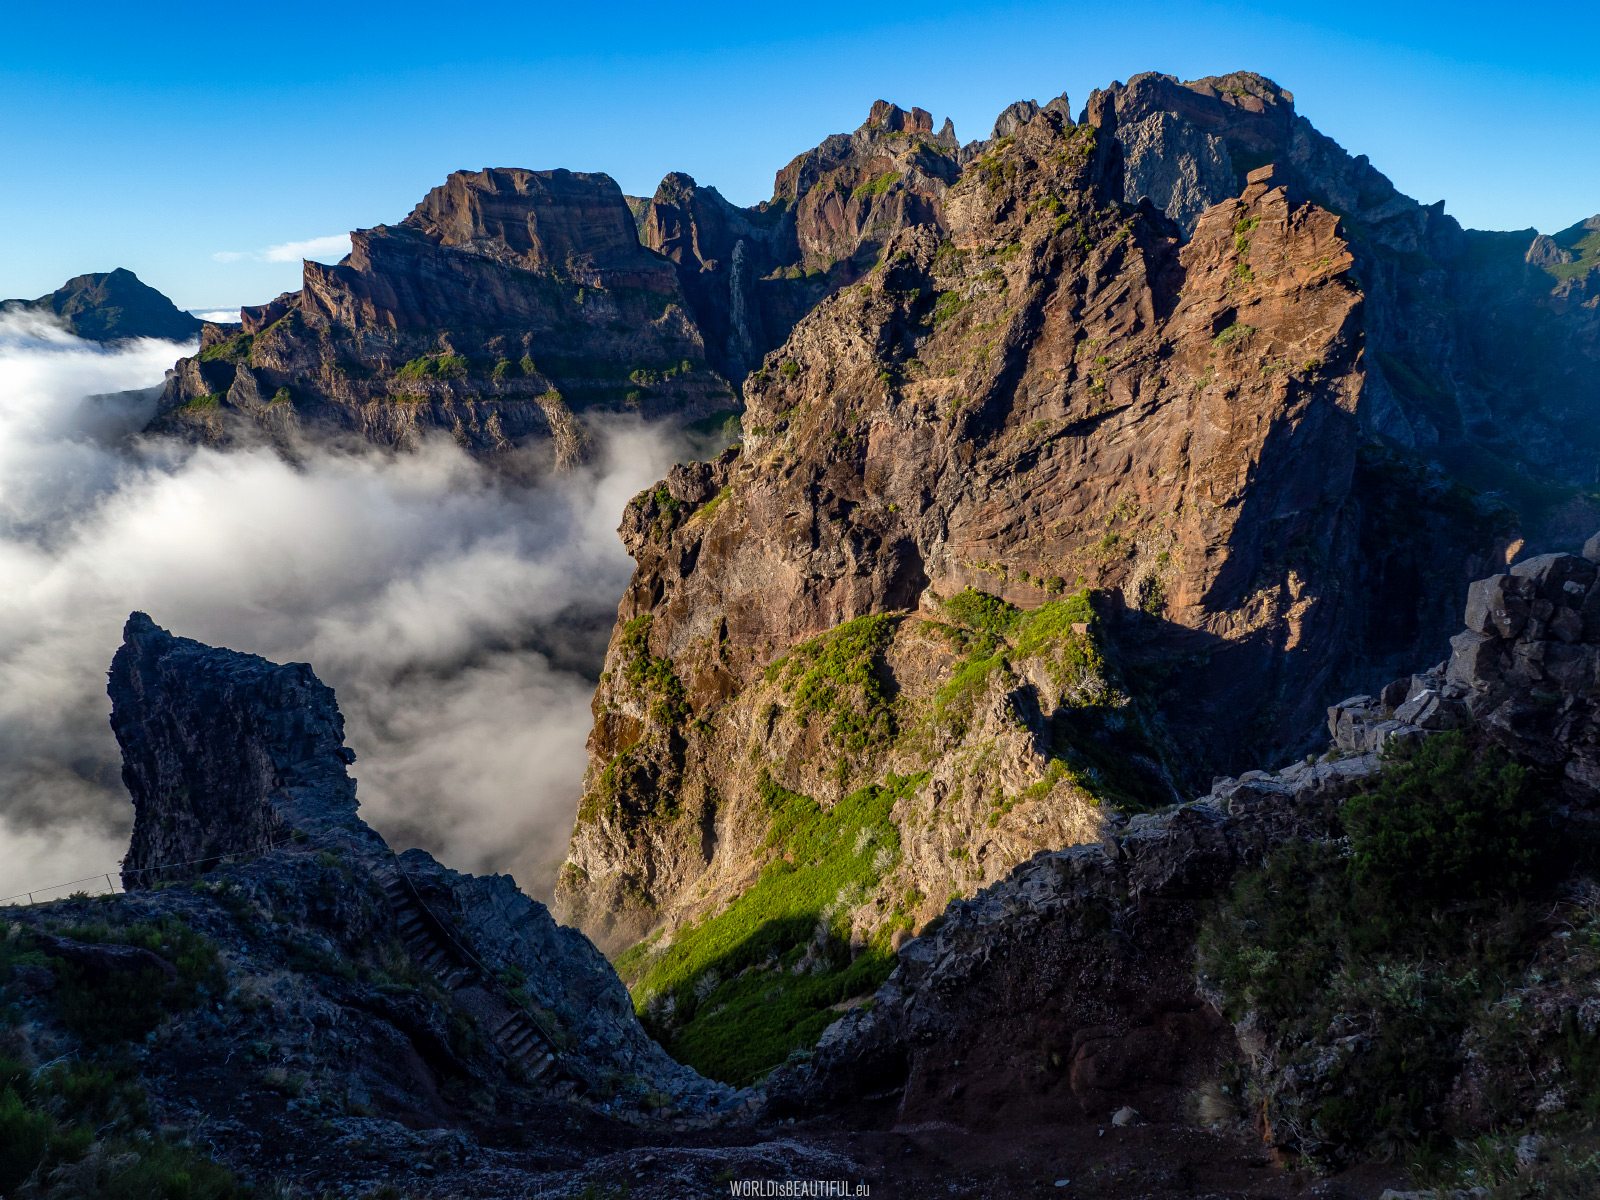 Madeira's greatest attractions